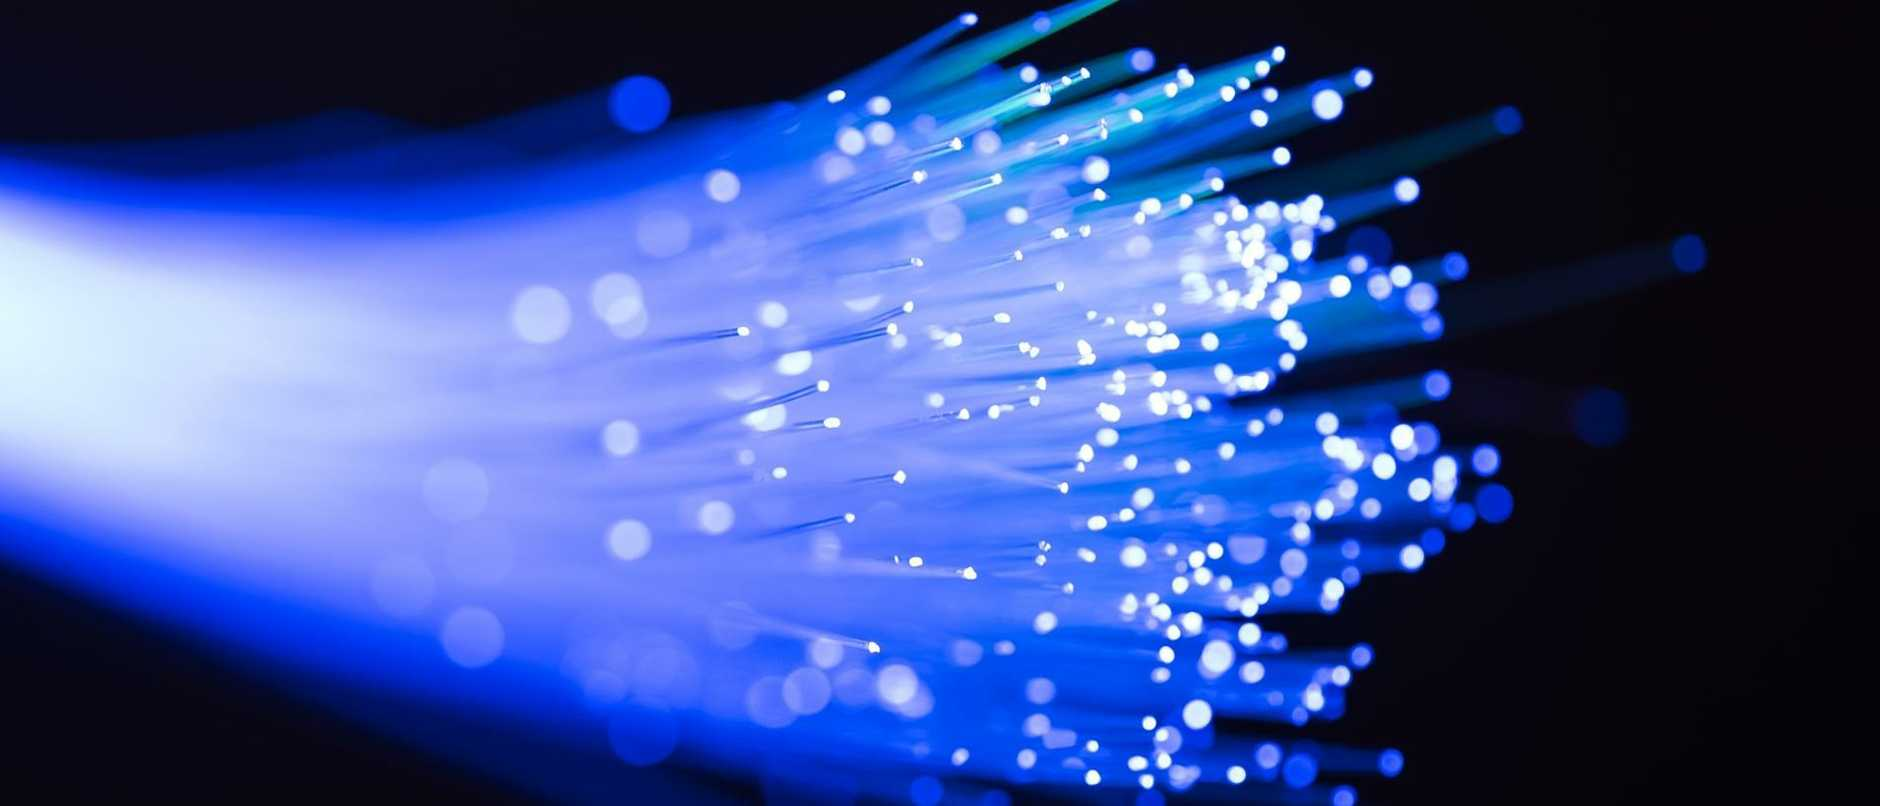 The multibillion-dollar network designed to deliver high-speed broadband in Australia may force more people on to fast mobile plans, an inquiry has heard.